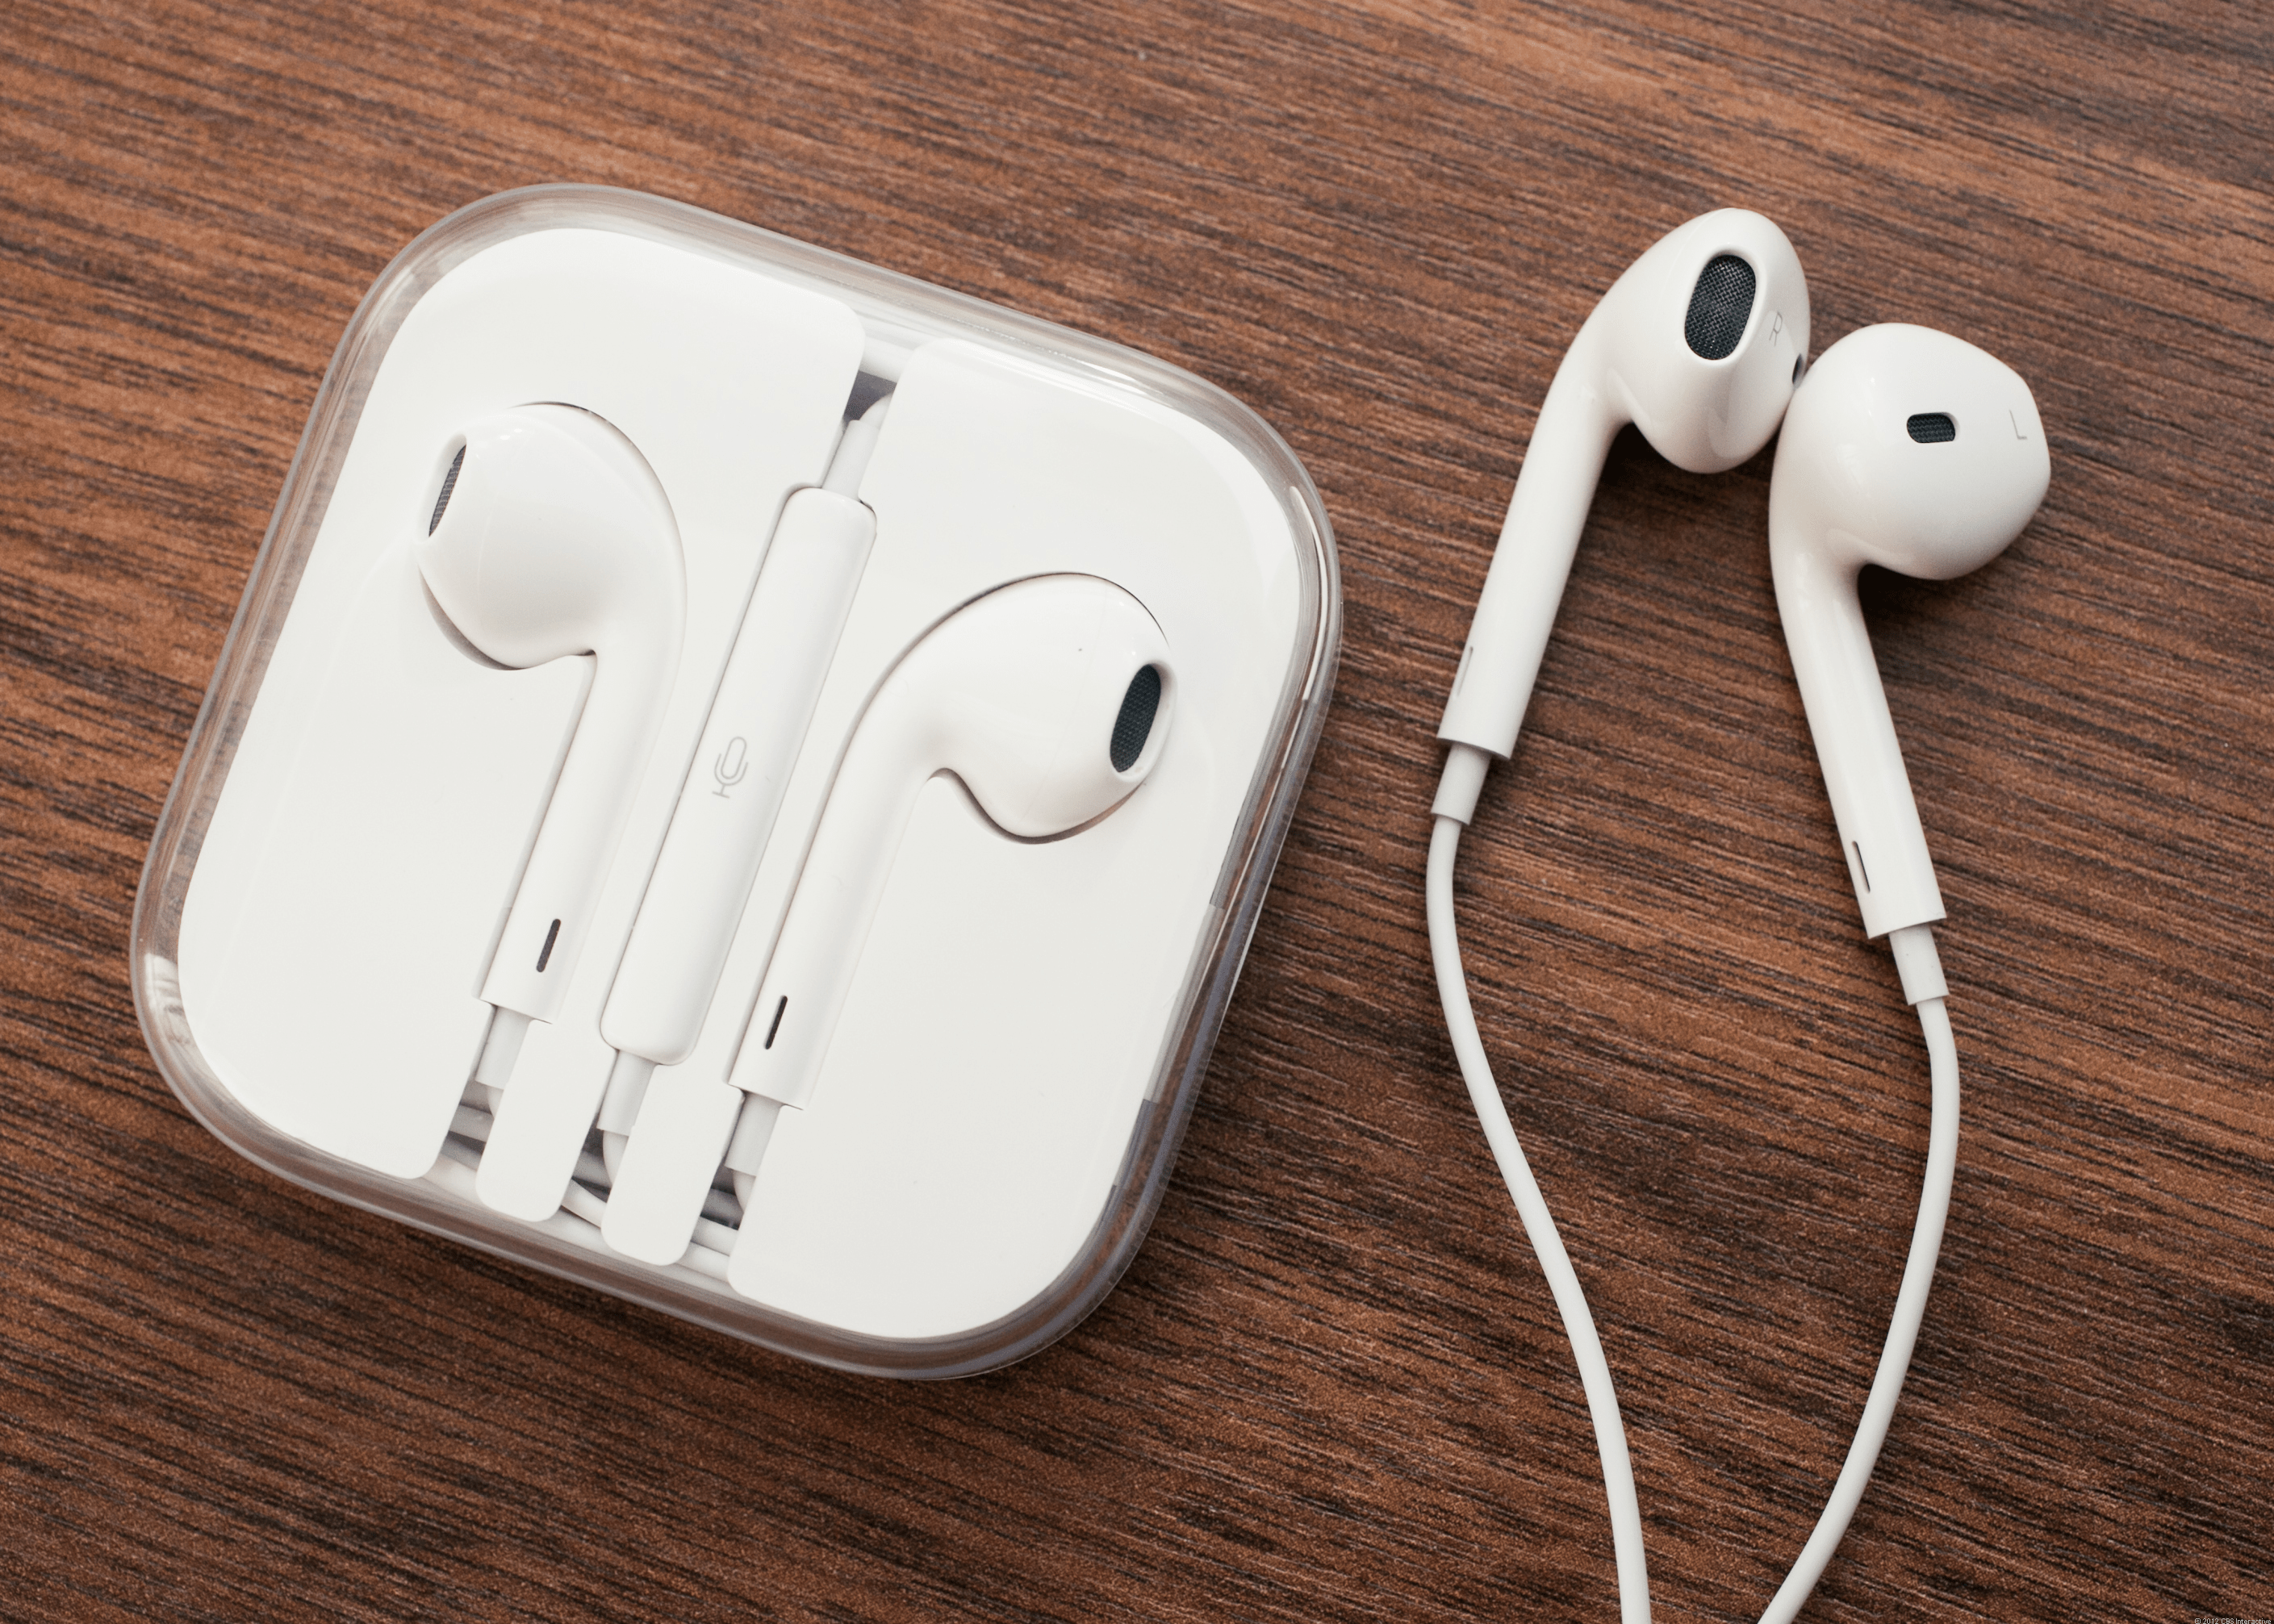 Revealed Do Apple Earpods Work With Android Phones